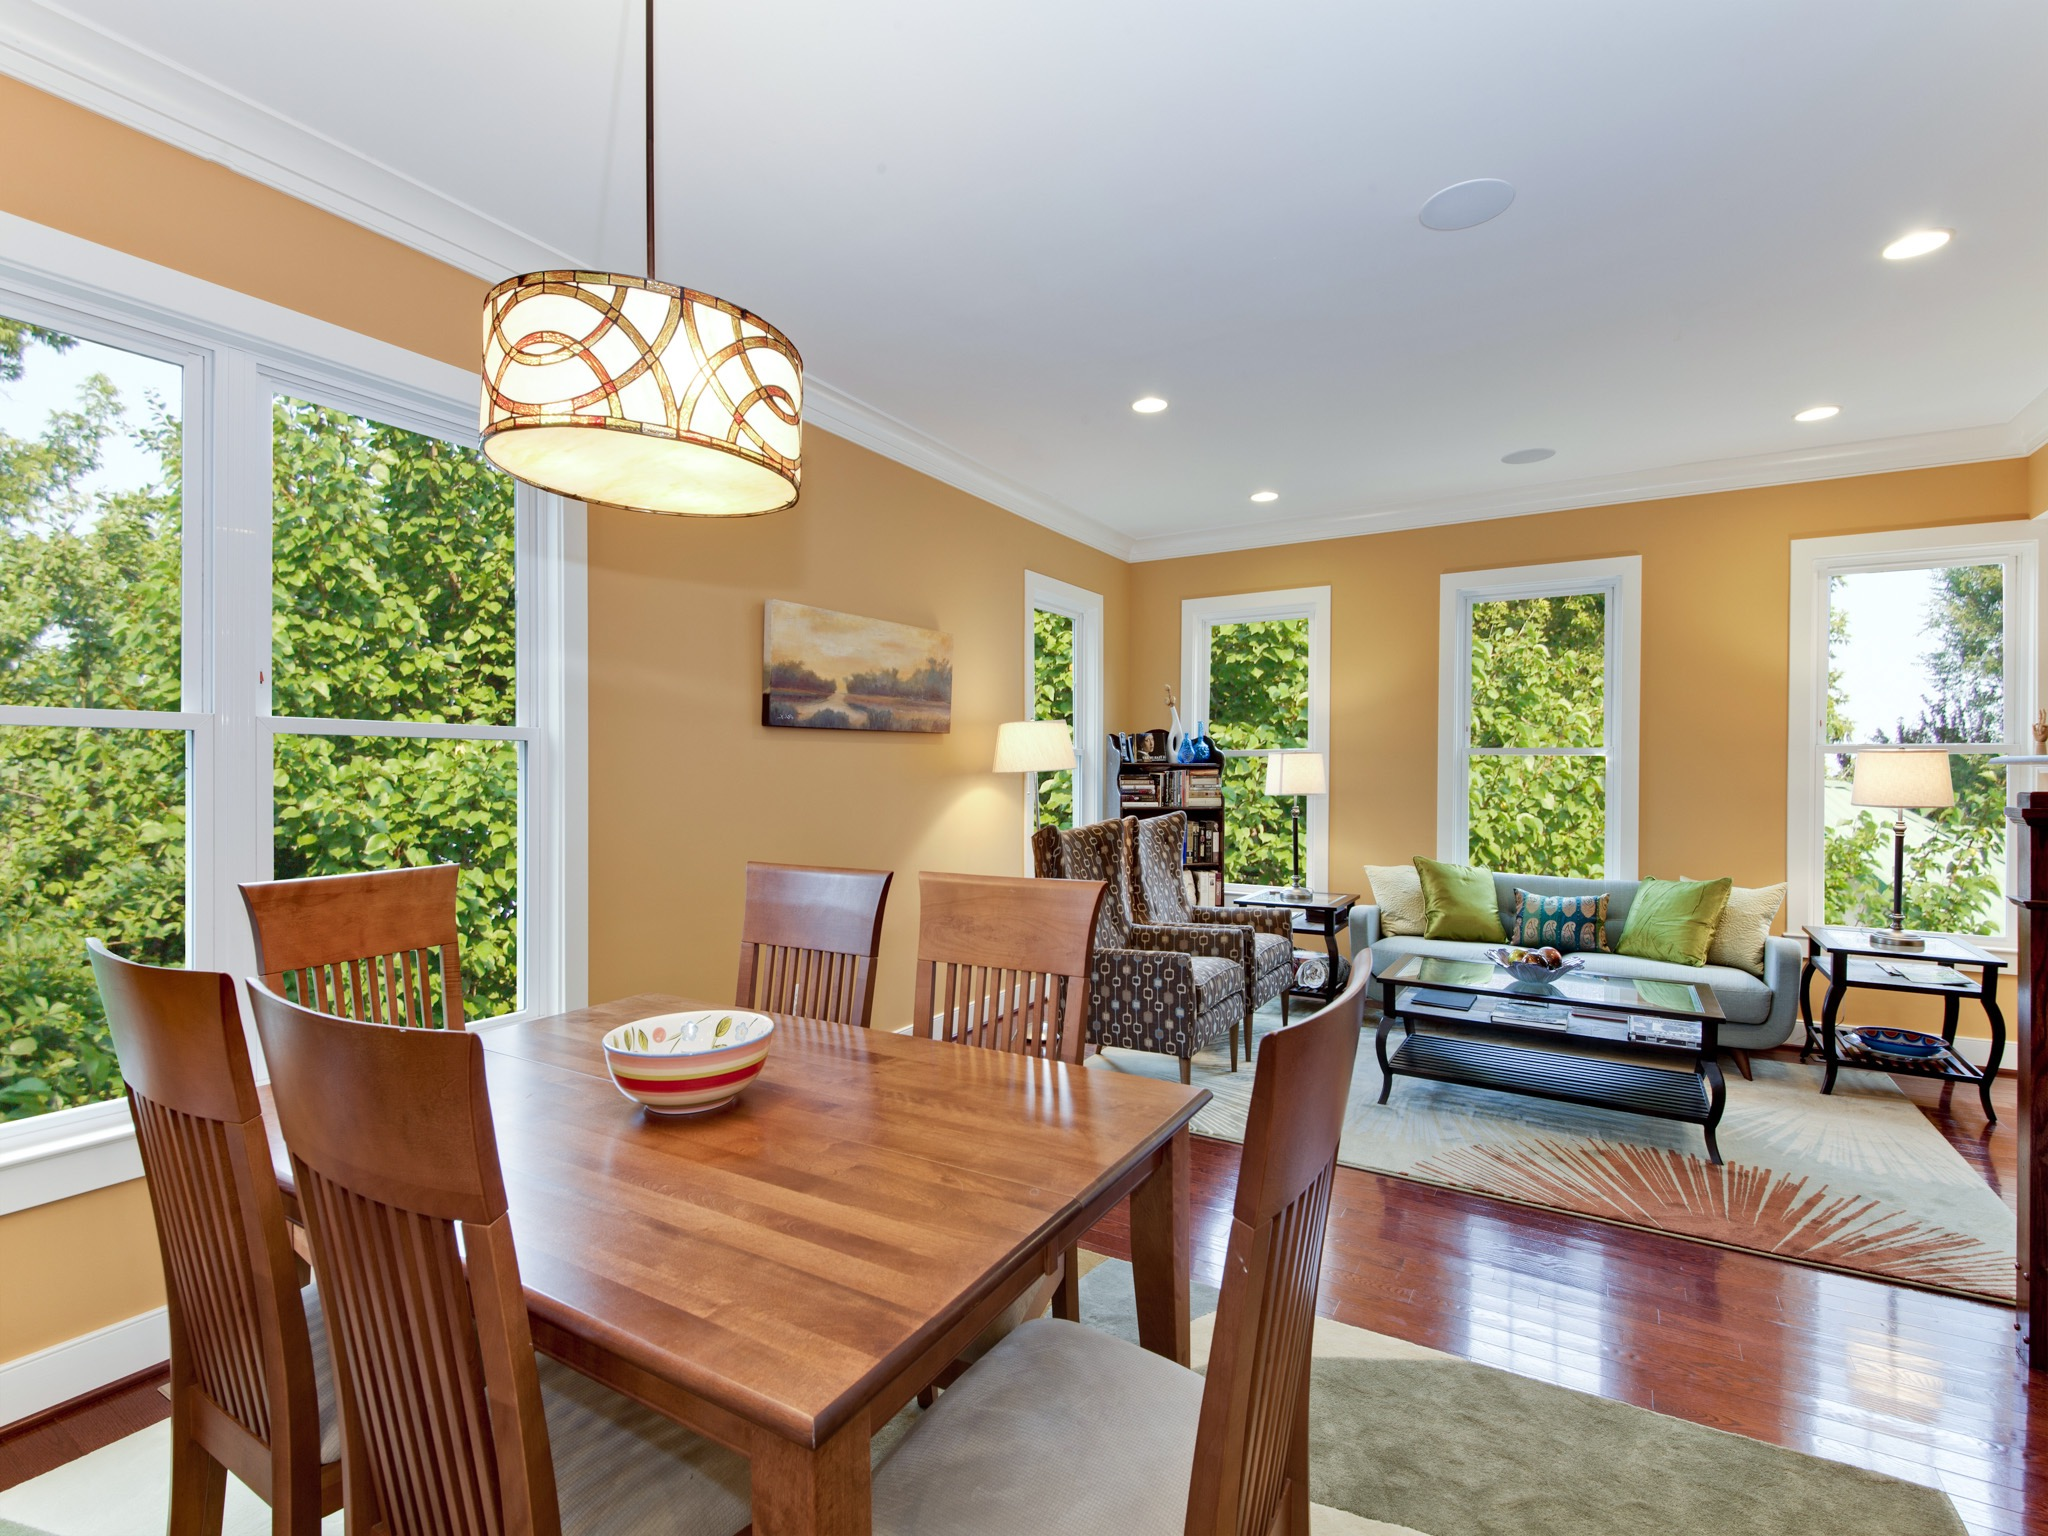 Combined Living And Dining Space In Trendy Design (Image 8 of 34)